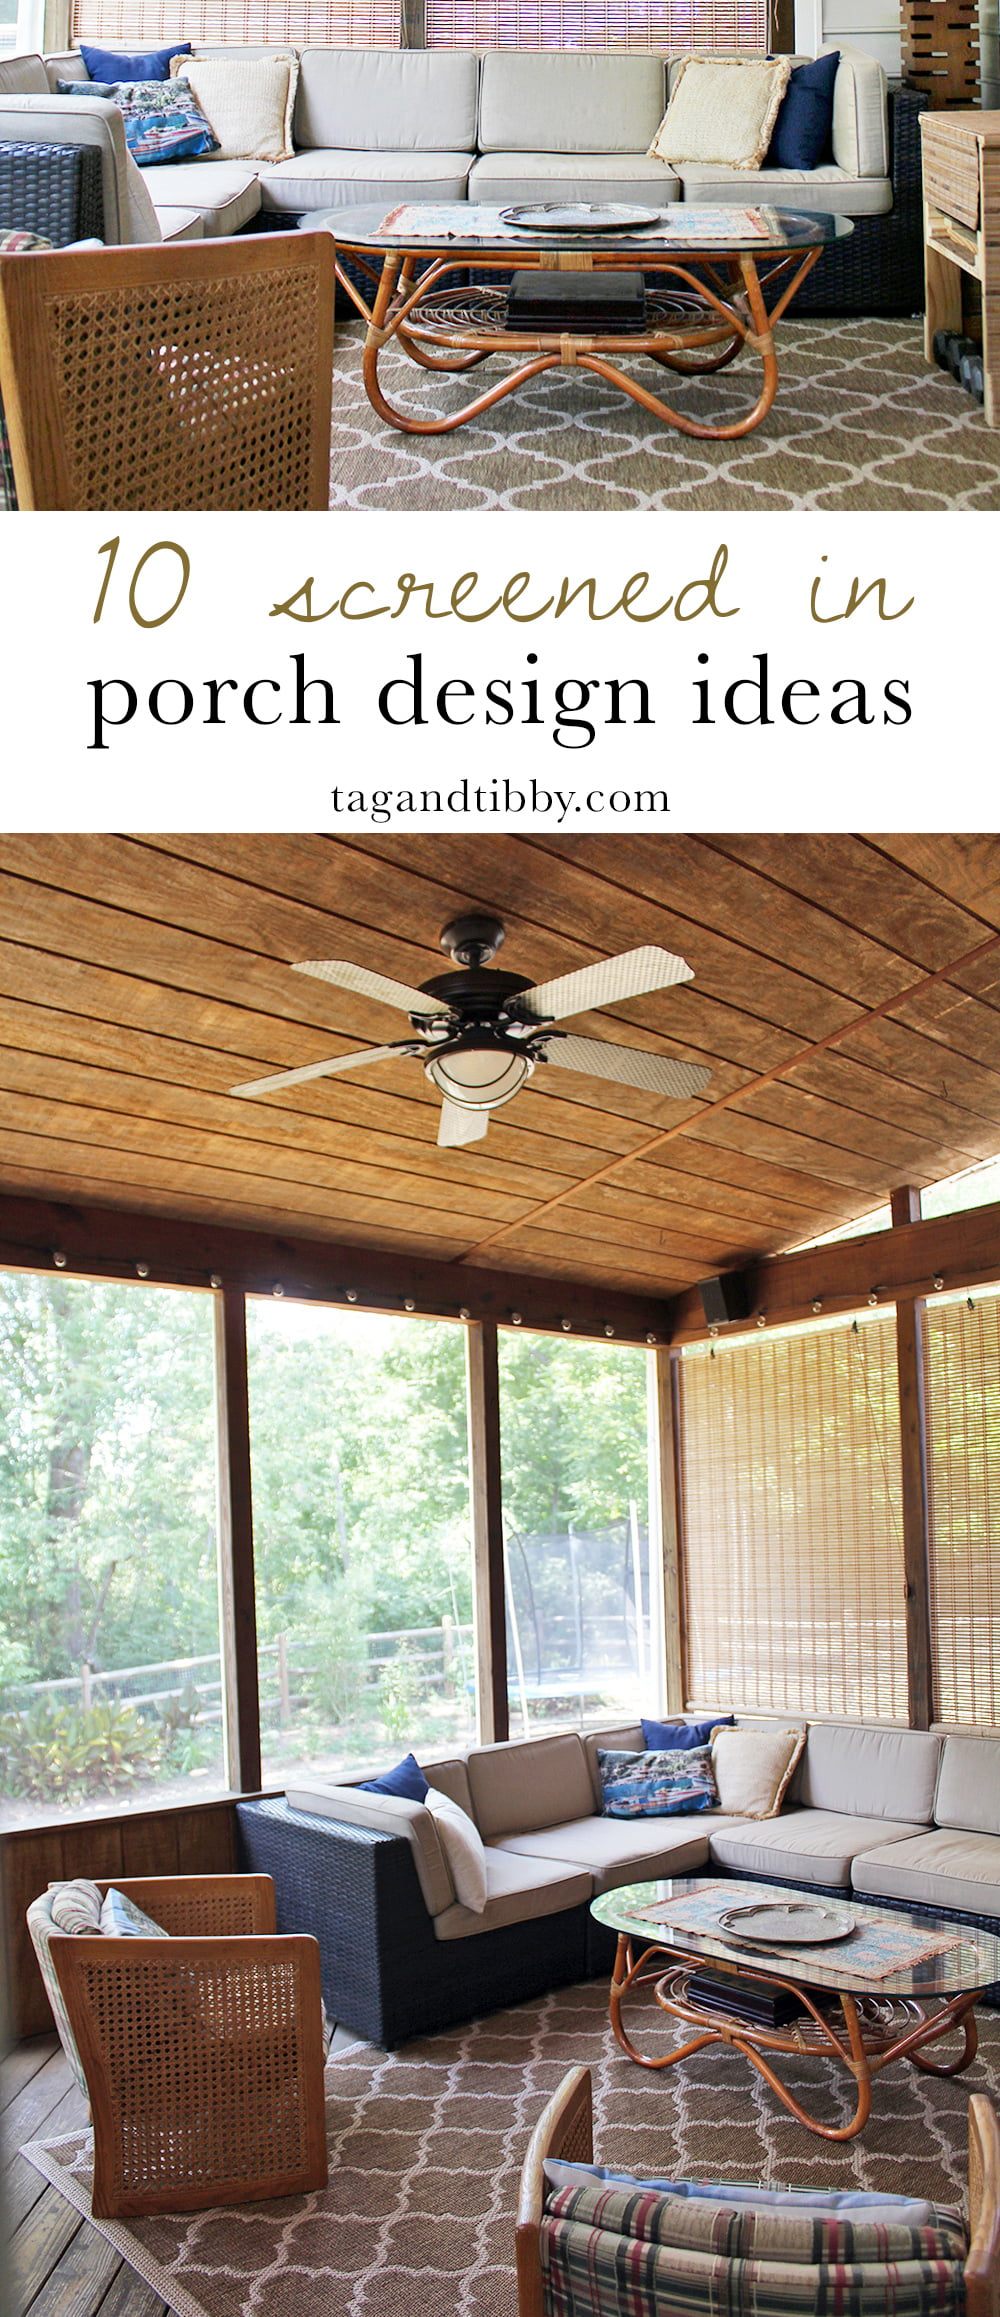 10 Screened In Back Porch Design Ideas #homedesign #spring #summer #porch #screenedporch